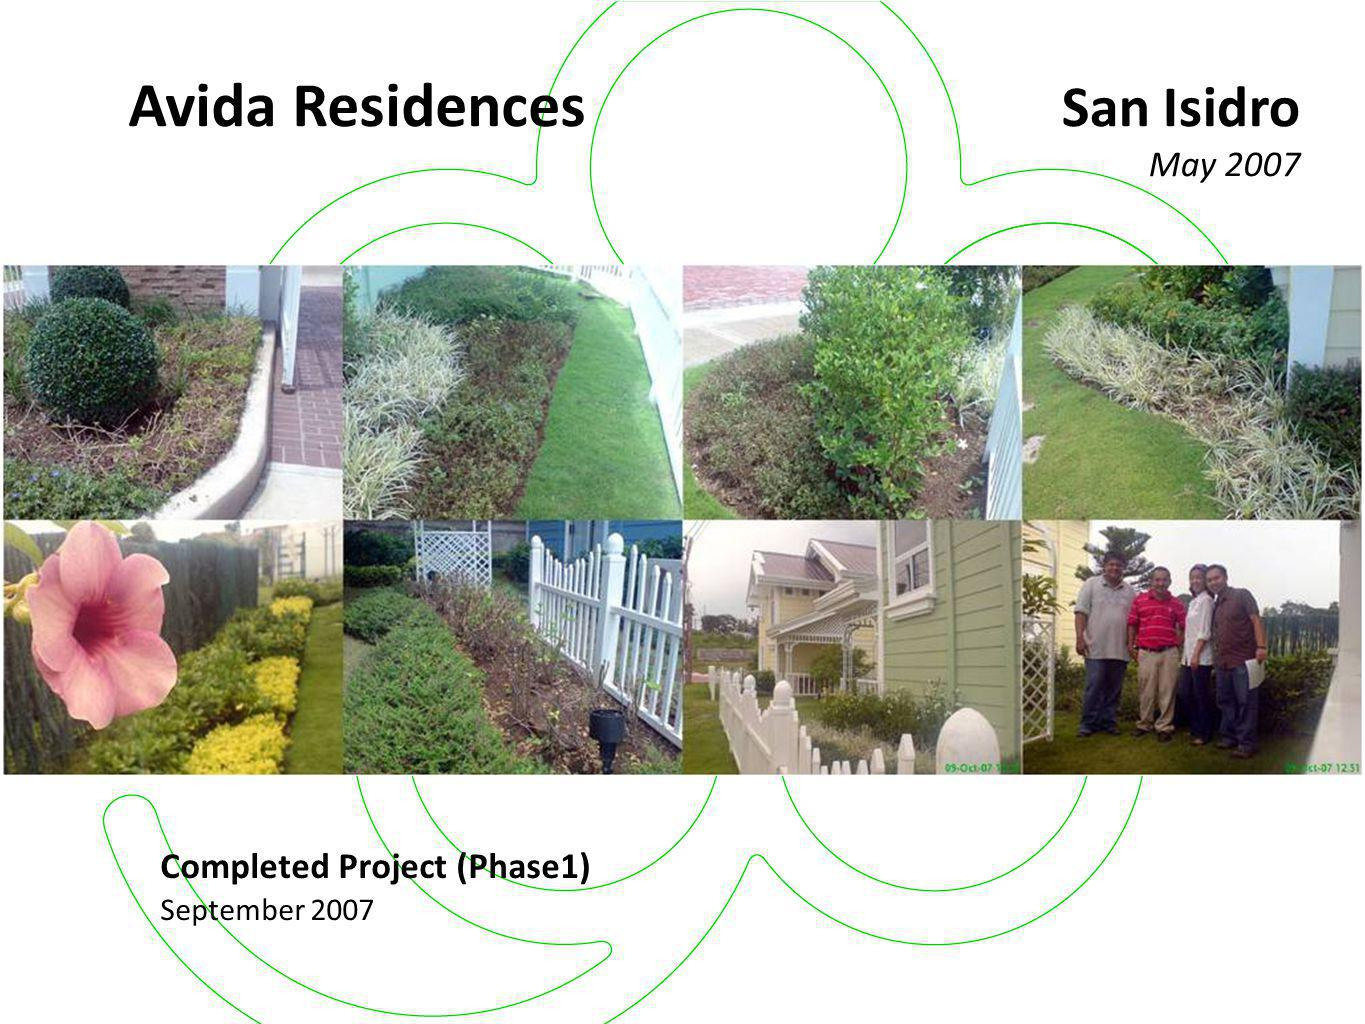 Avida Residences San Isidro May 2007 Completed Project (Phase1)